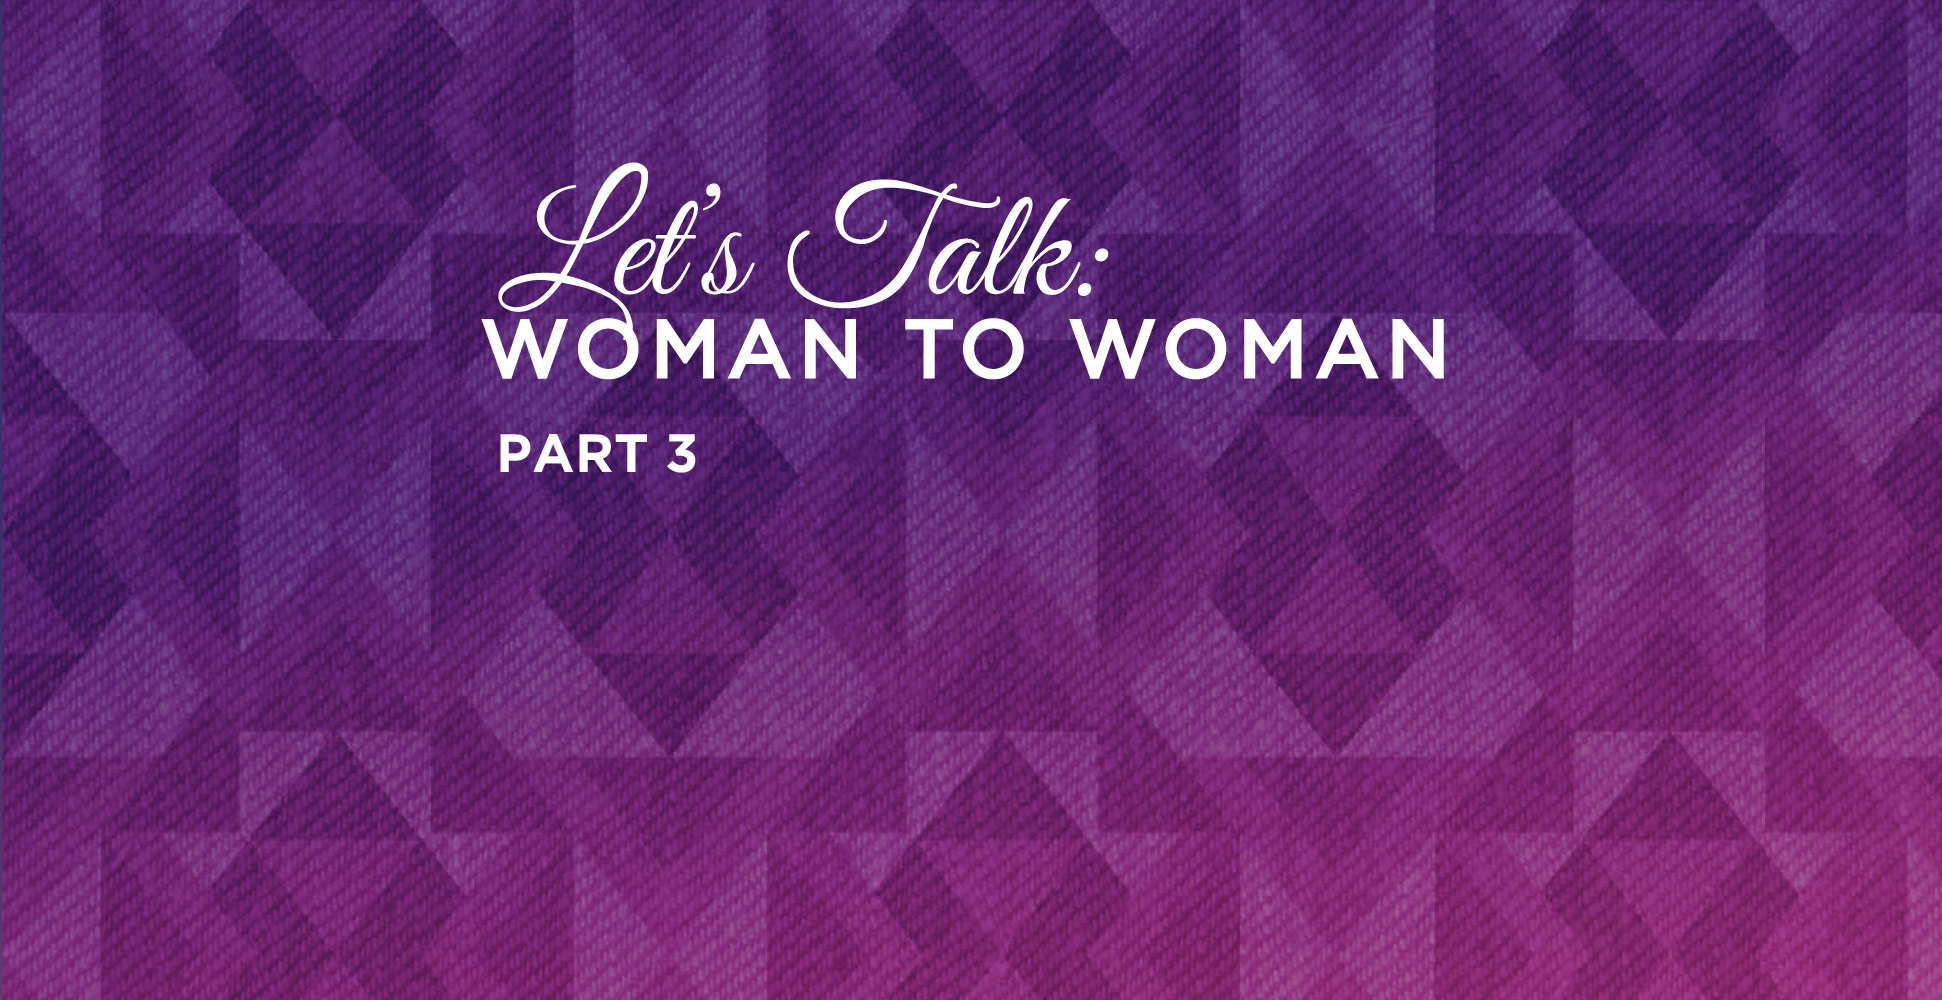 Let's Talk: Woman to Woman Part 3 | The Women's Fund of the Shelby Foundation